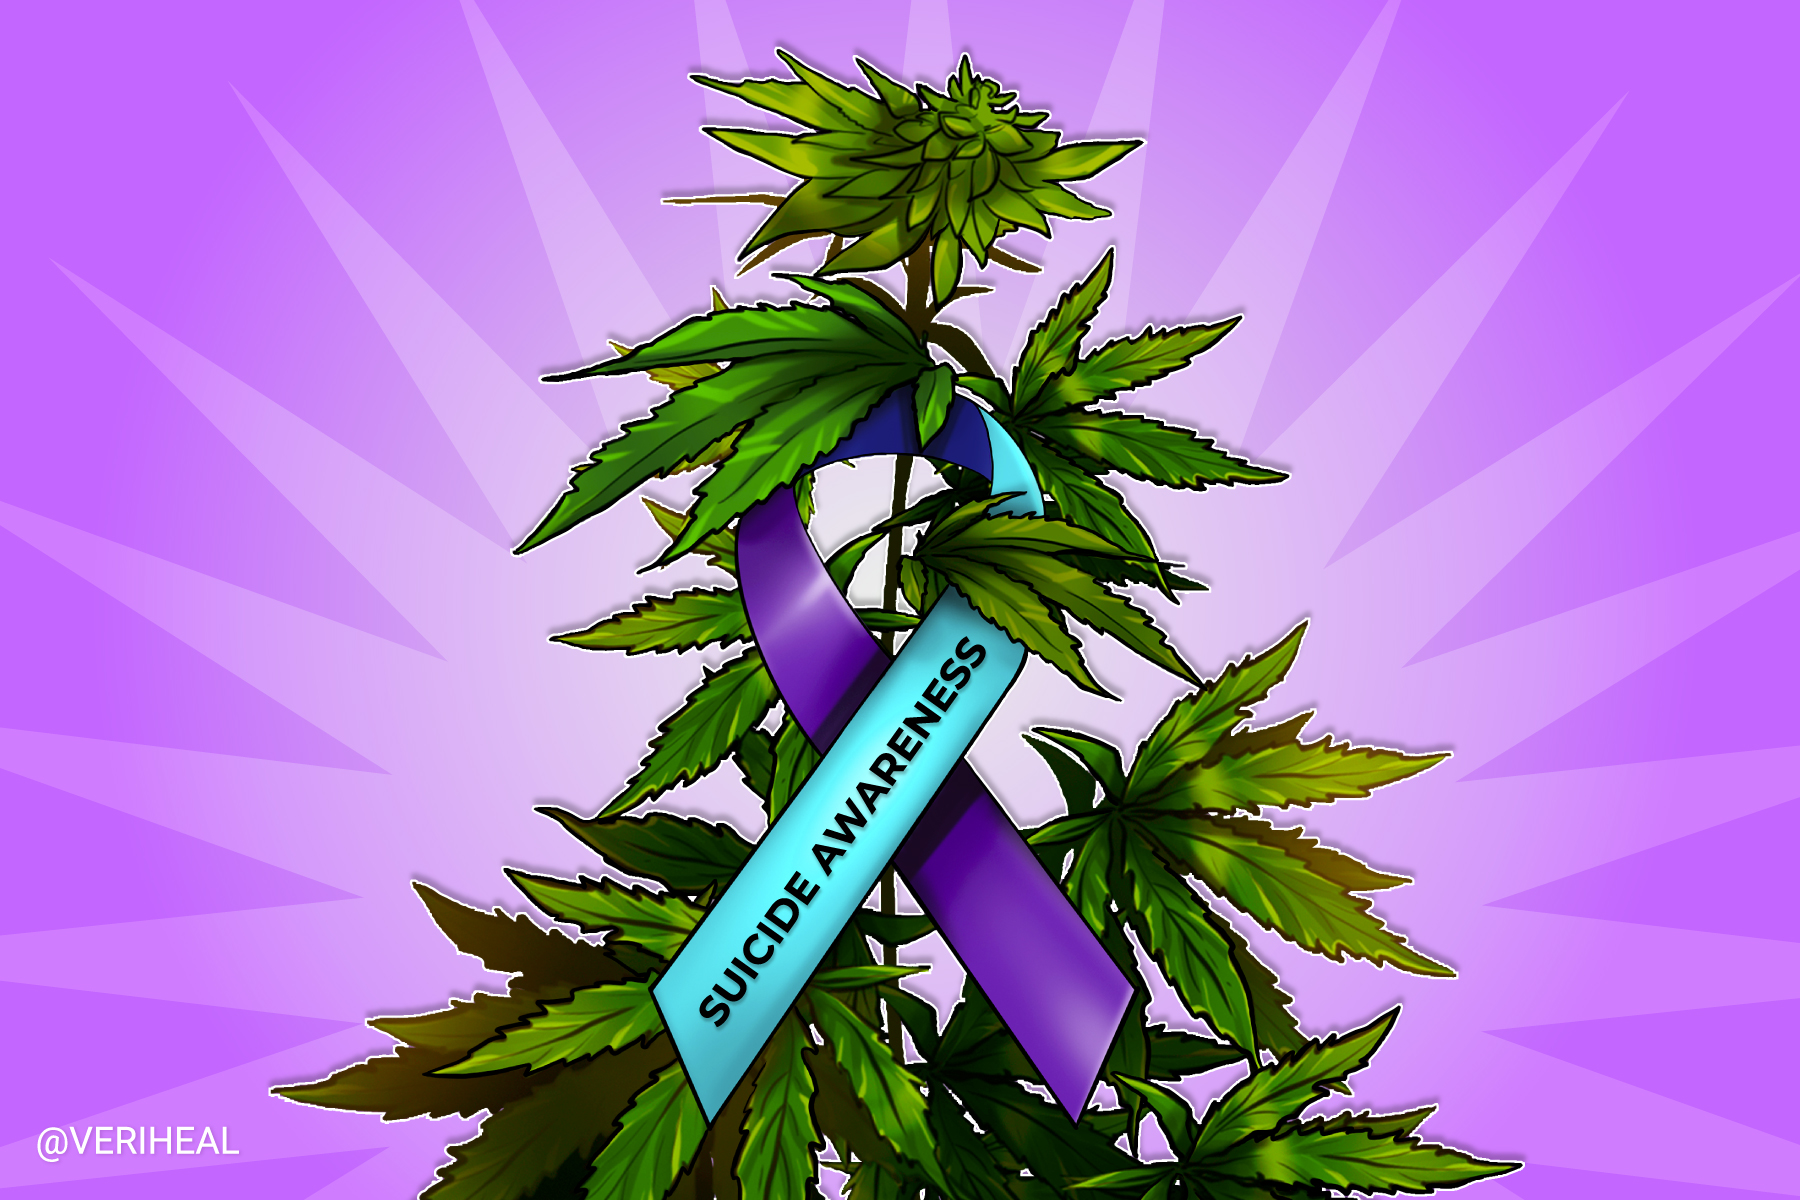 Health Experts Say the Link Between Cannabis and Suicidal Thoughts is Not That Simple